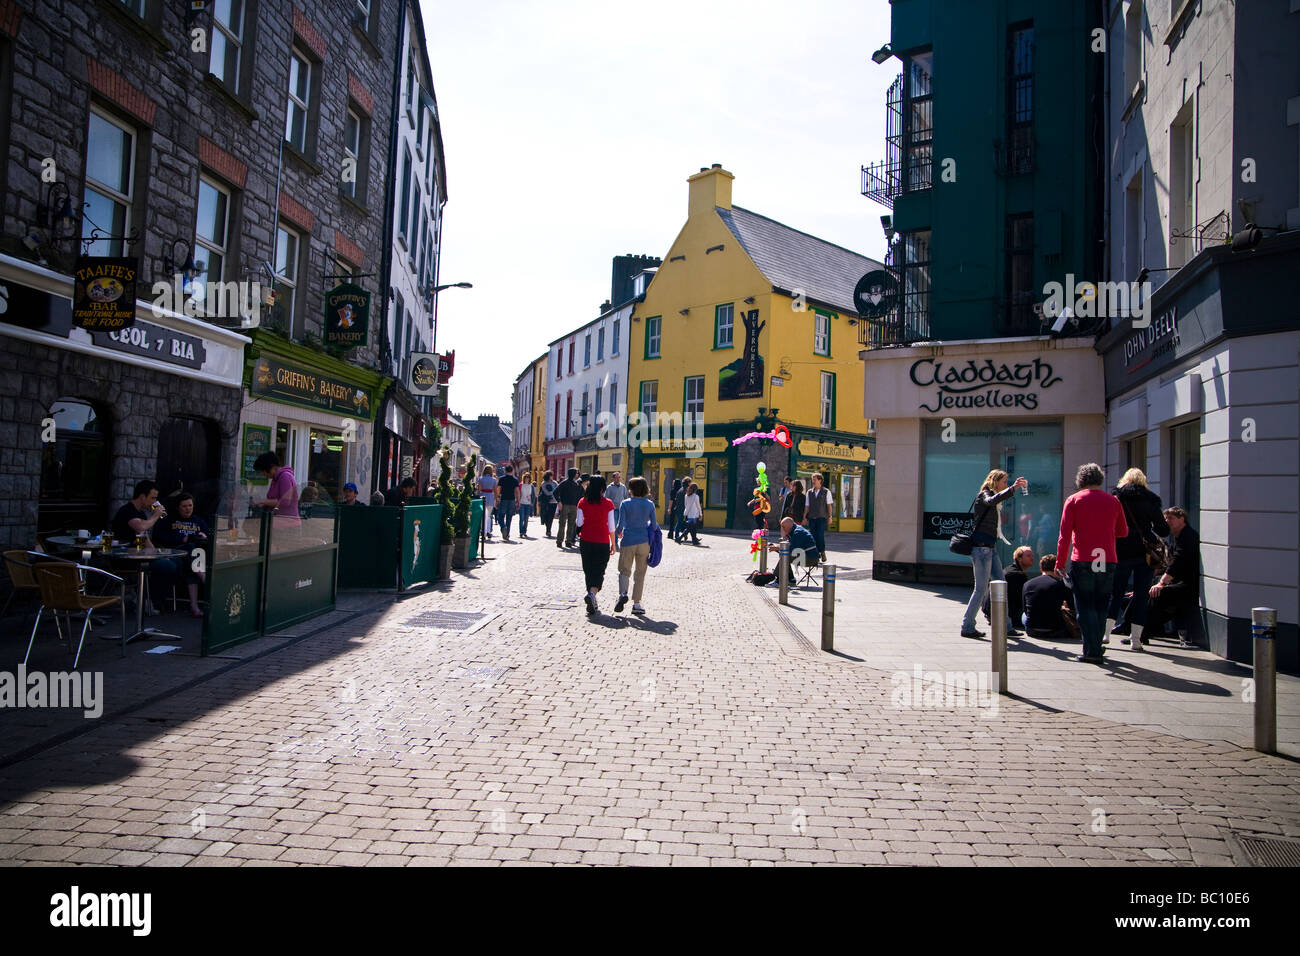 Shopping street in Galway city center Ireland - Stock Image